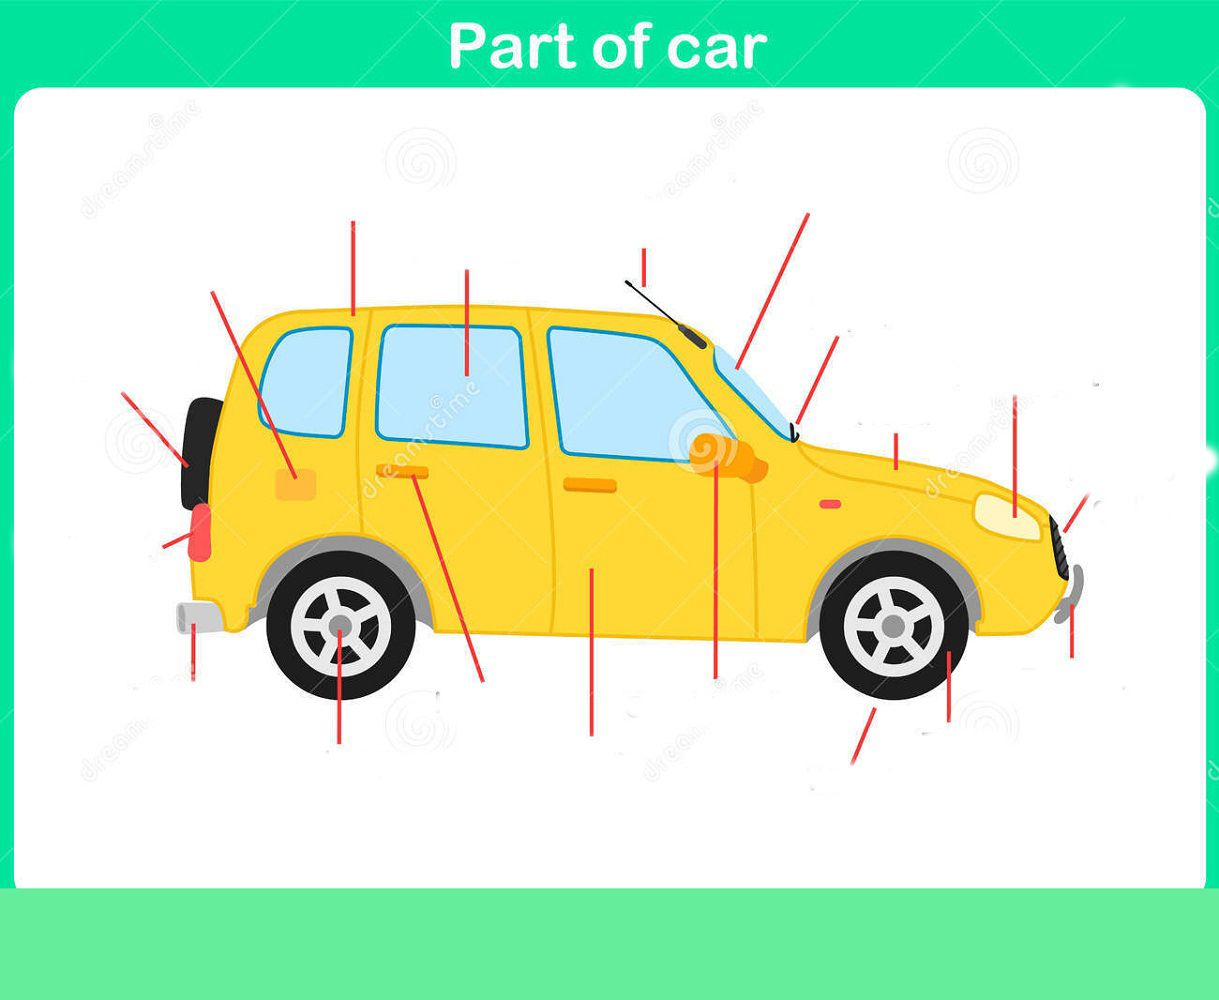 Car Diagram Without Labels